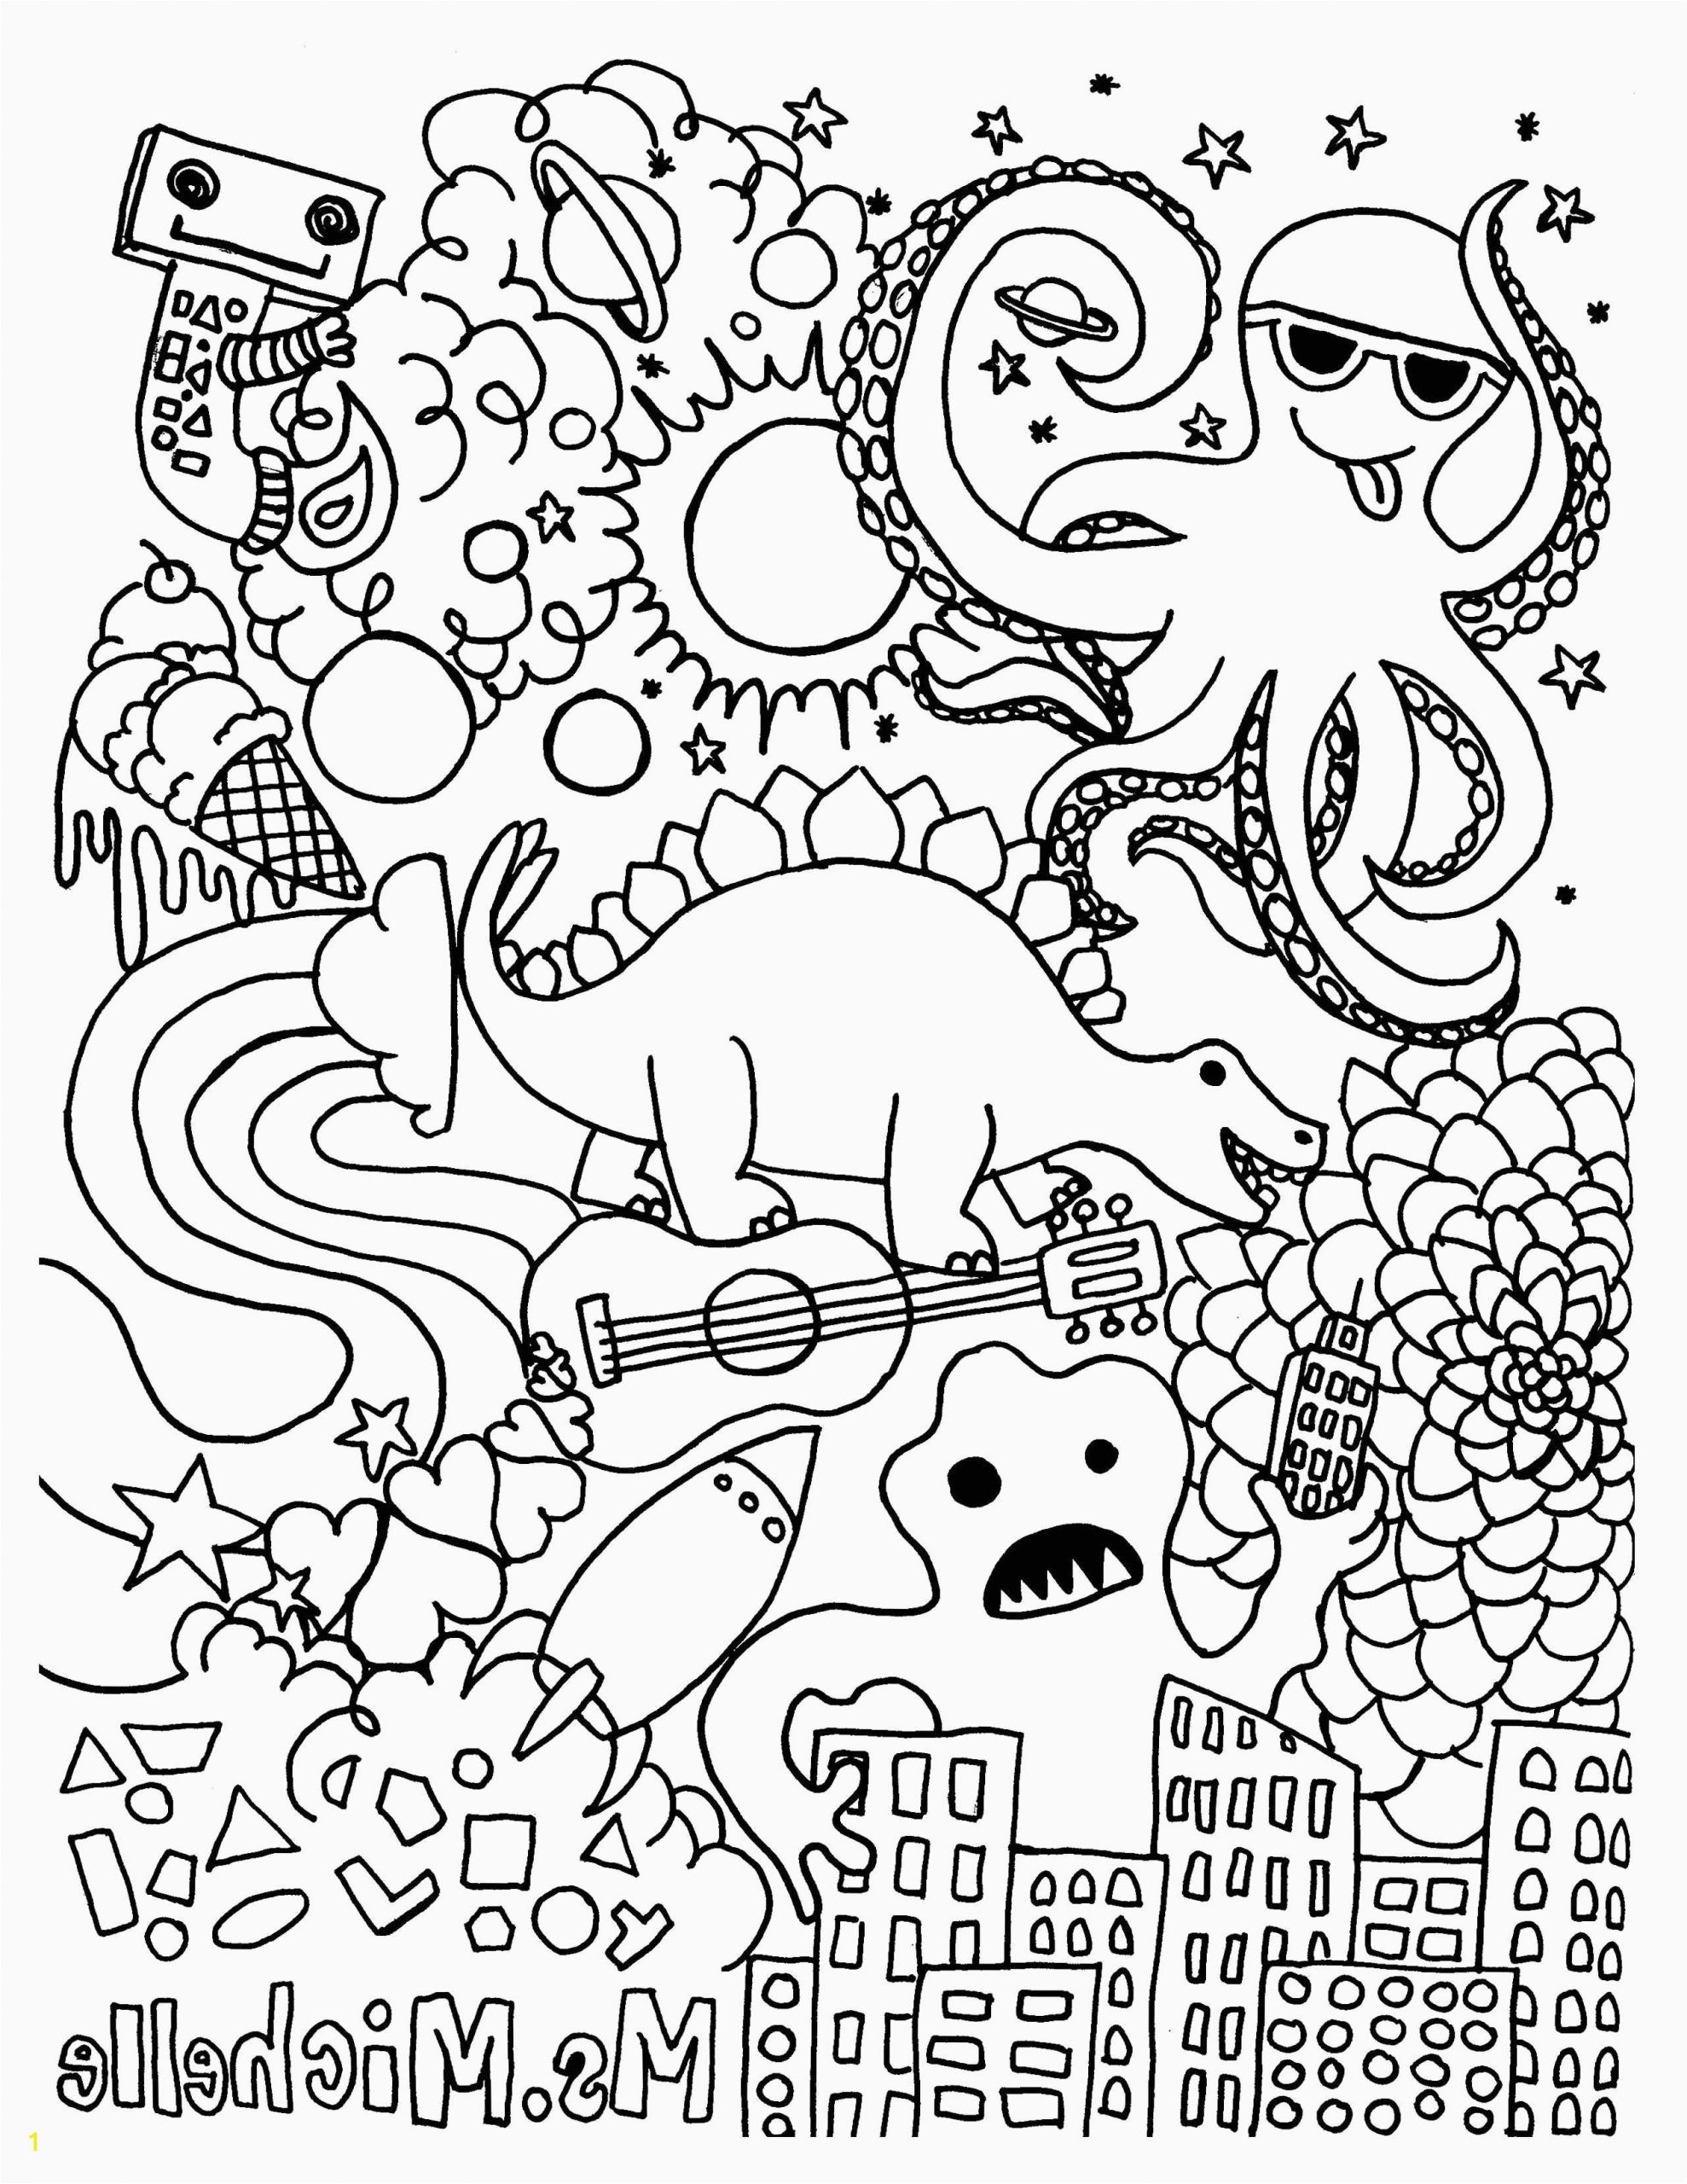 cuss words coloring page best of collection coloring pages words printable new simple word coloring pages of cuss words coloring page